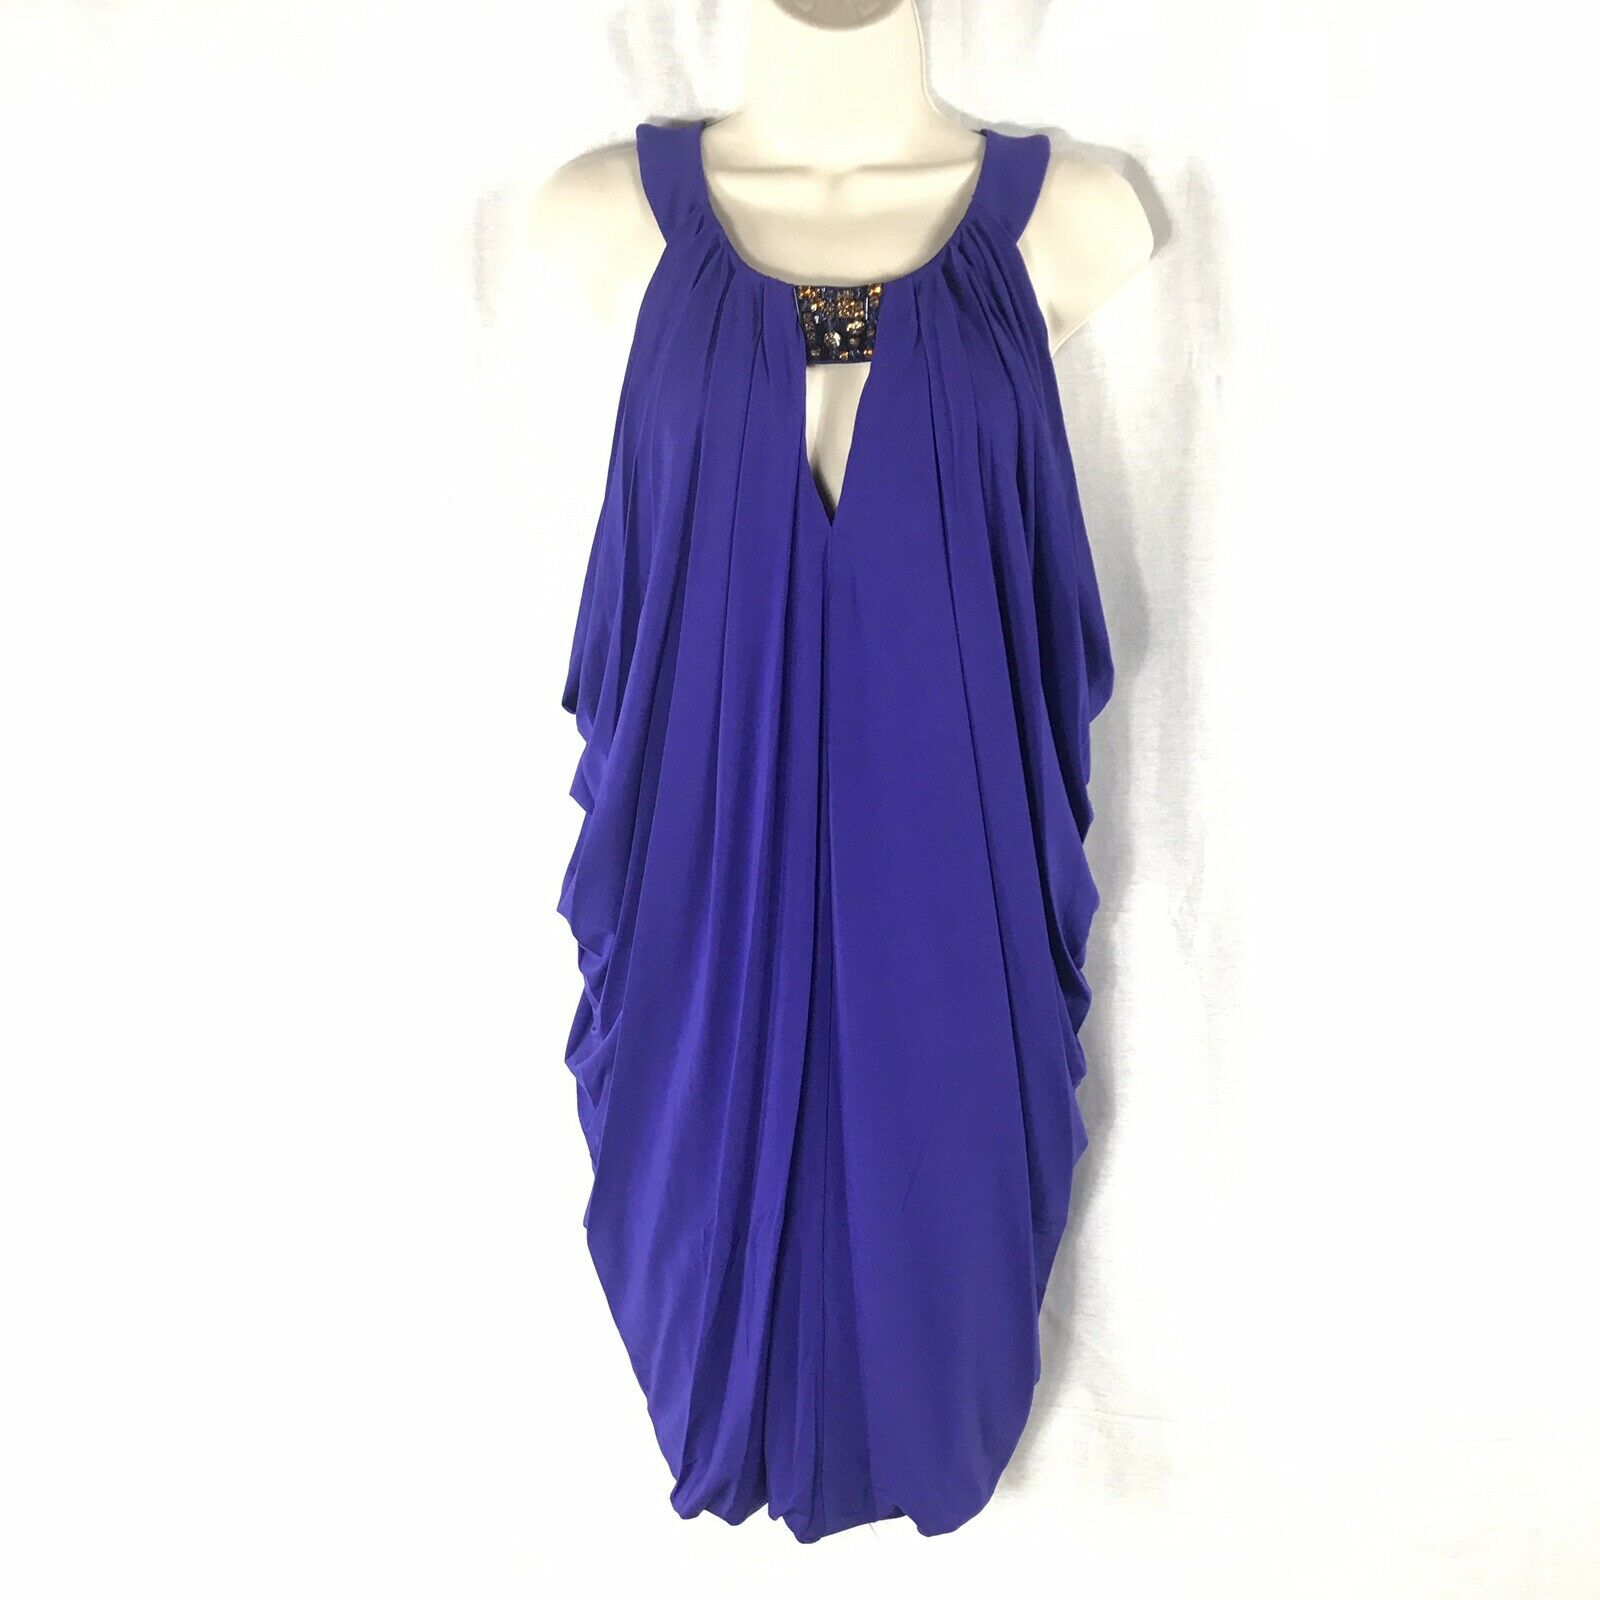 BCBG MAX AZRIA Dregal Blau Dress Größe Medium